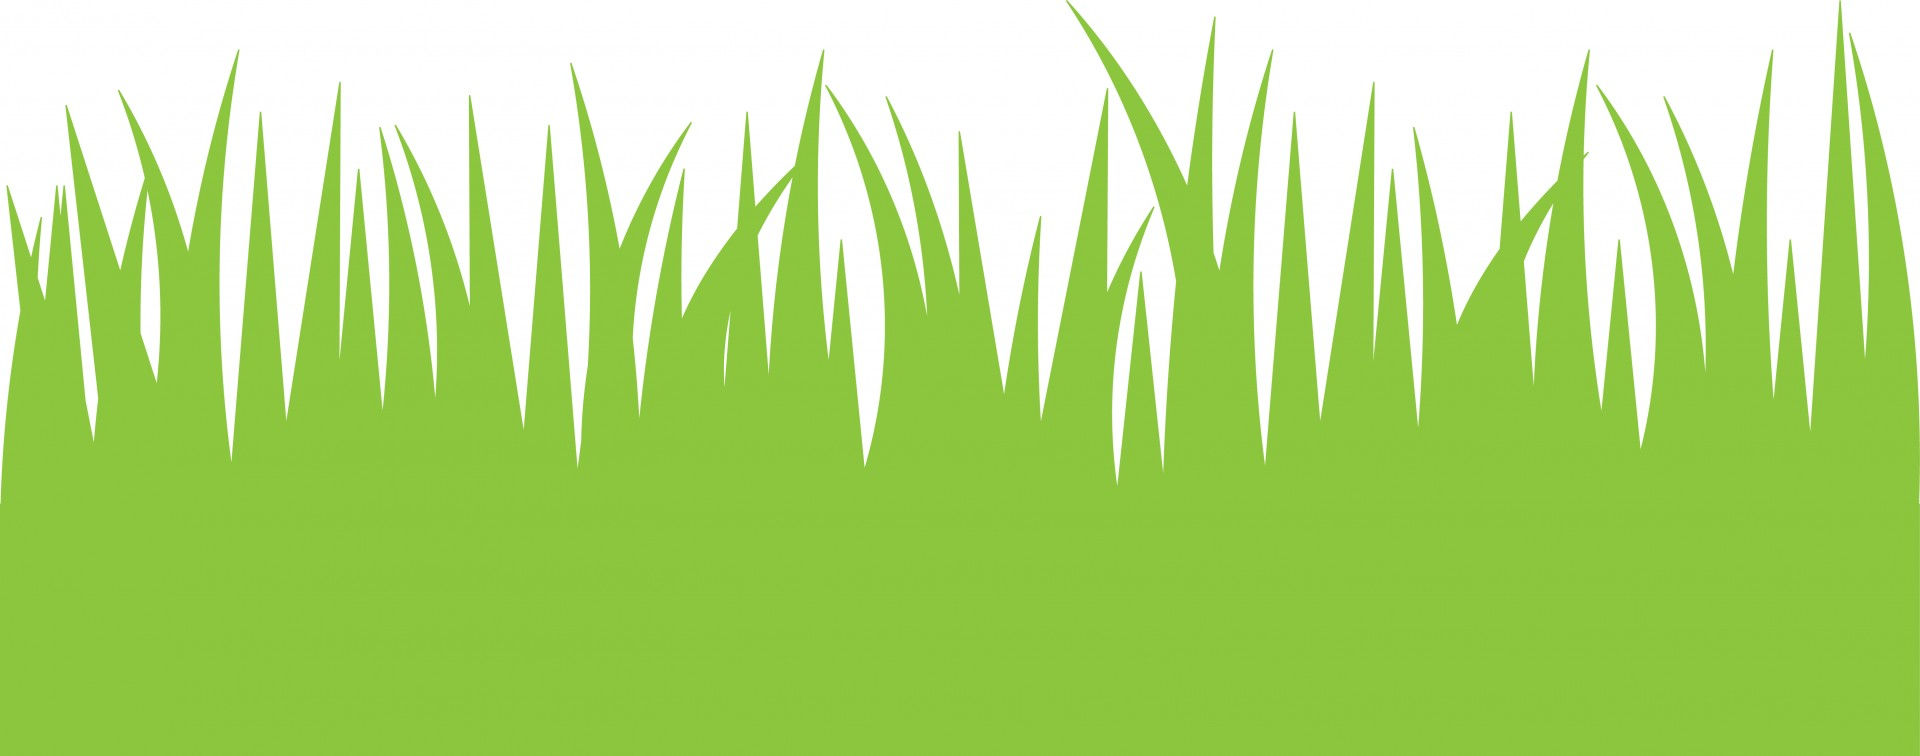 image free stock Free cliparts download clip. Lawn care clipart realistic grass.